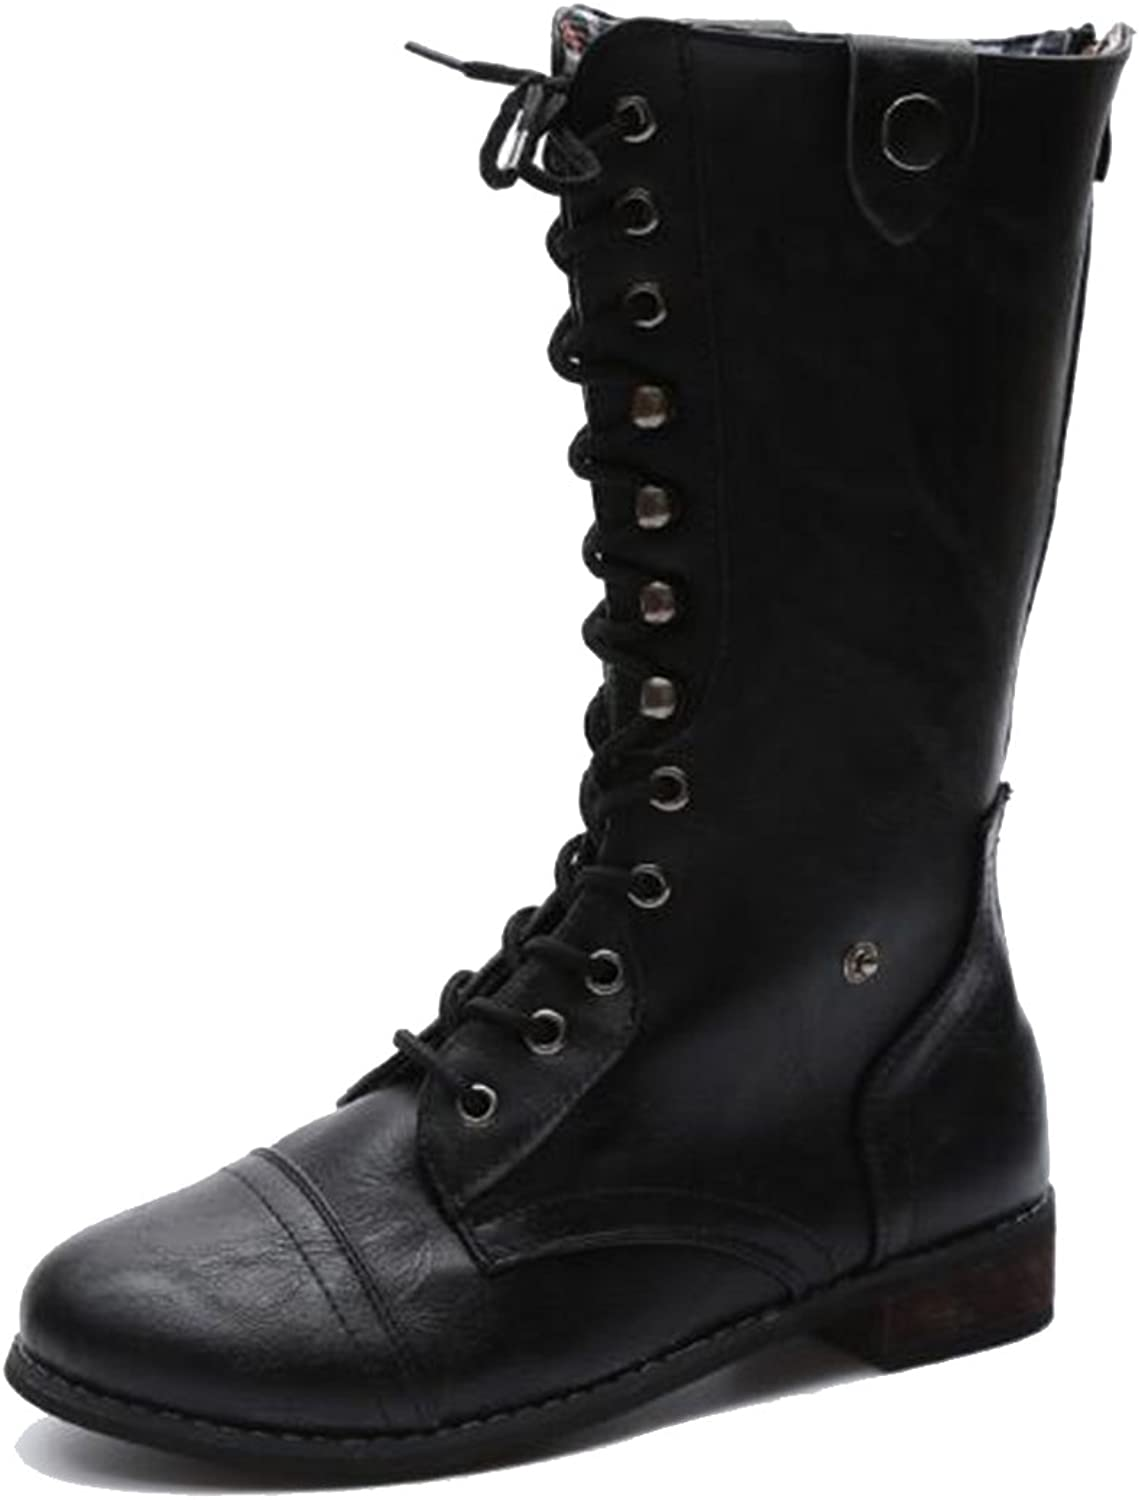 COVOYYAR Women's Vintage Lace Up Flat Mid Calf Riding Boots Winter shoes